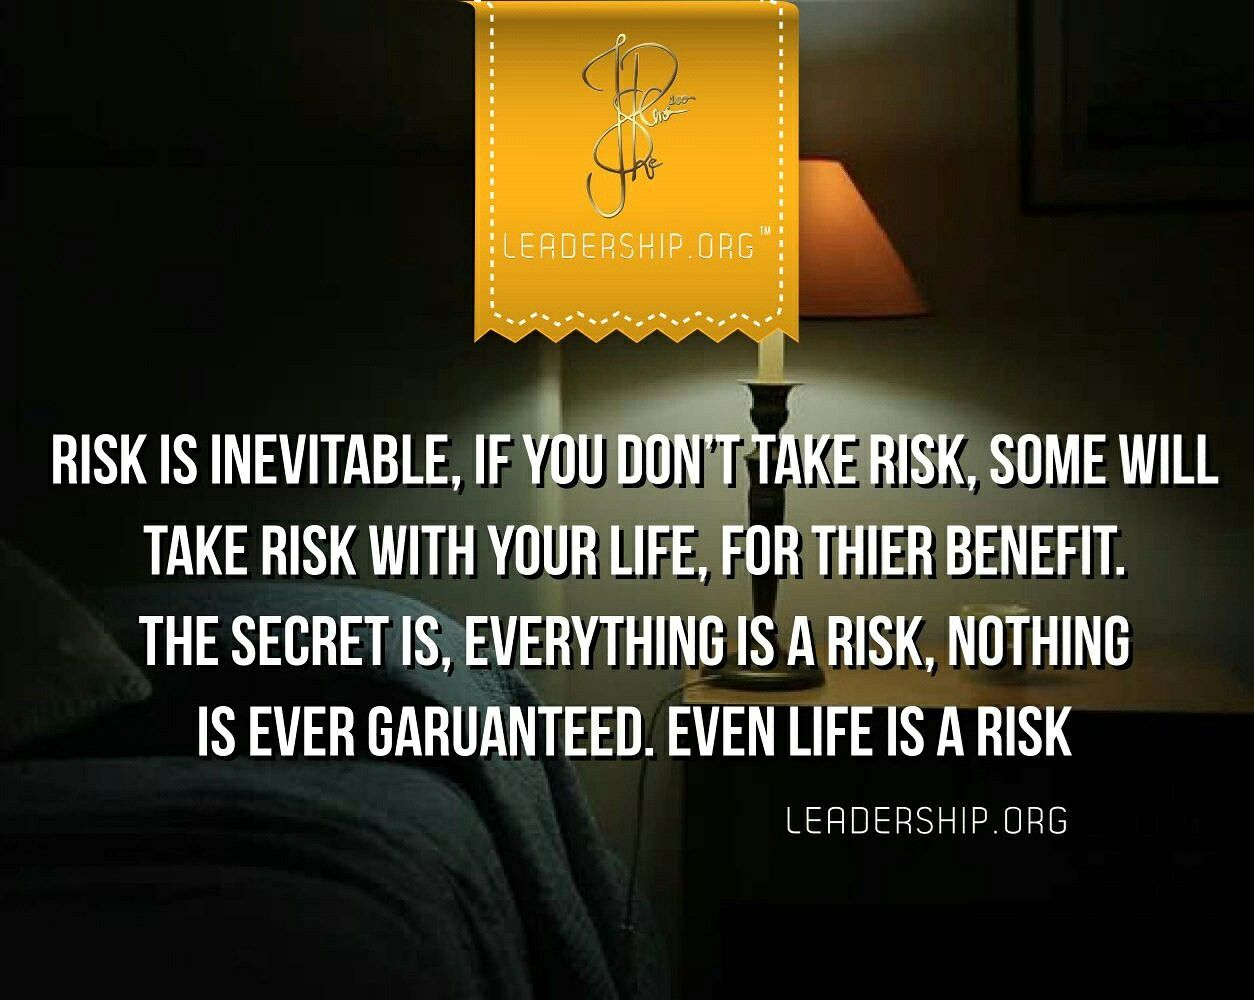 No One Knows The Future And That By Its Self If Risk Have